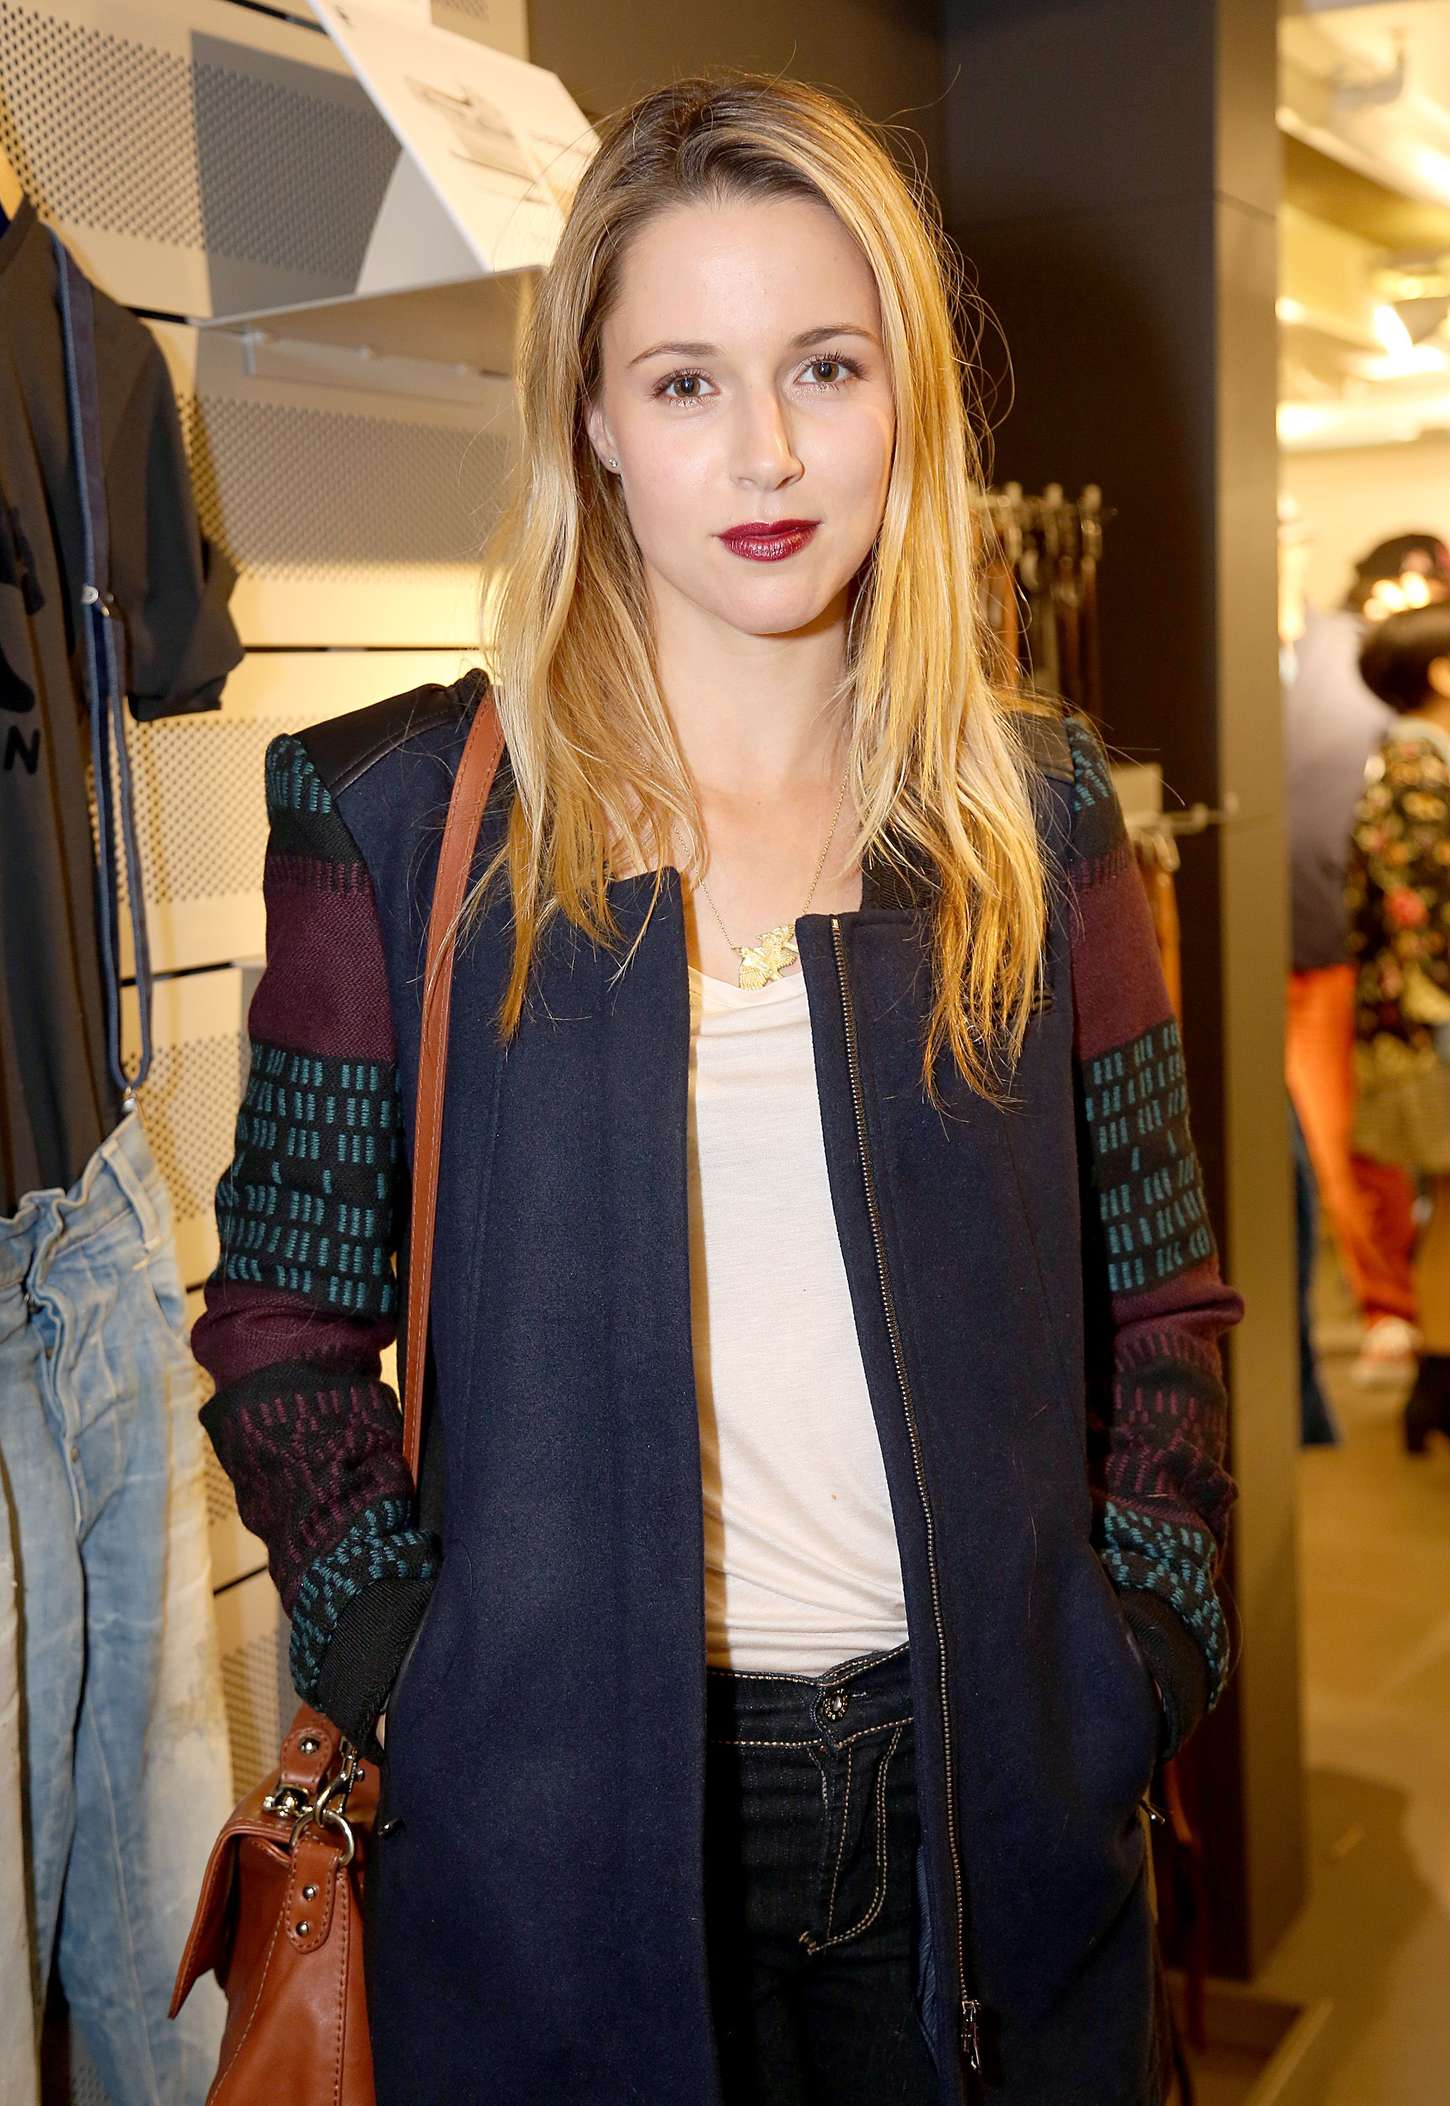 Alona Tal Flaunt Magazine Dye Issue pre-release event in Los Angeles